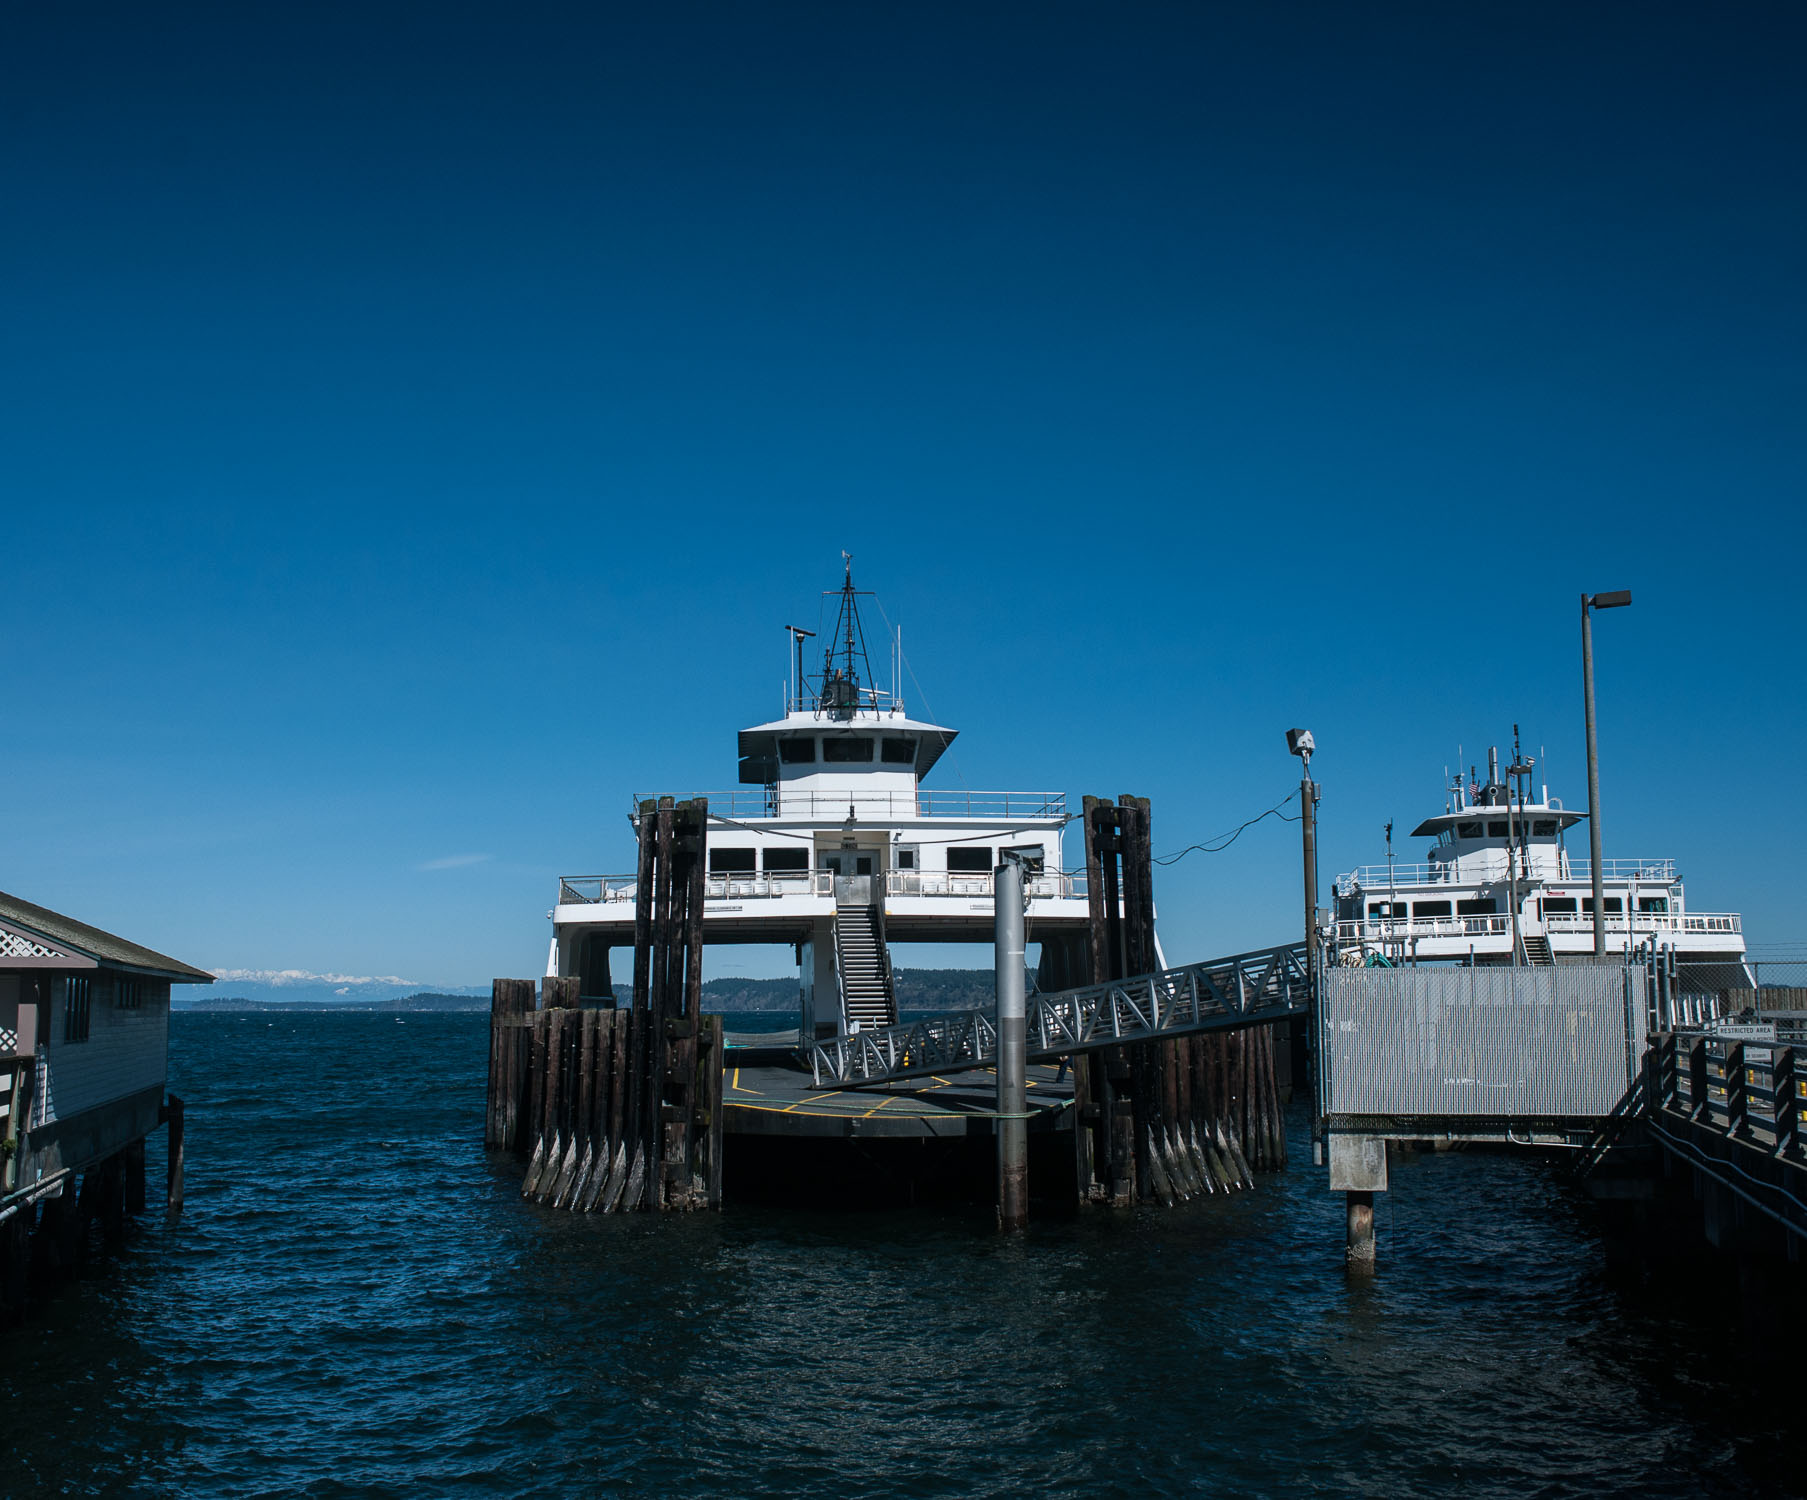 An empty boat meant for transporting vehicles at the Steilacoom Ferry Dock.